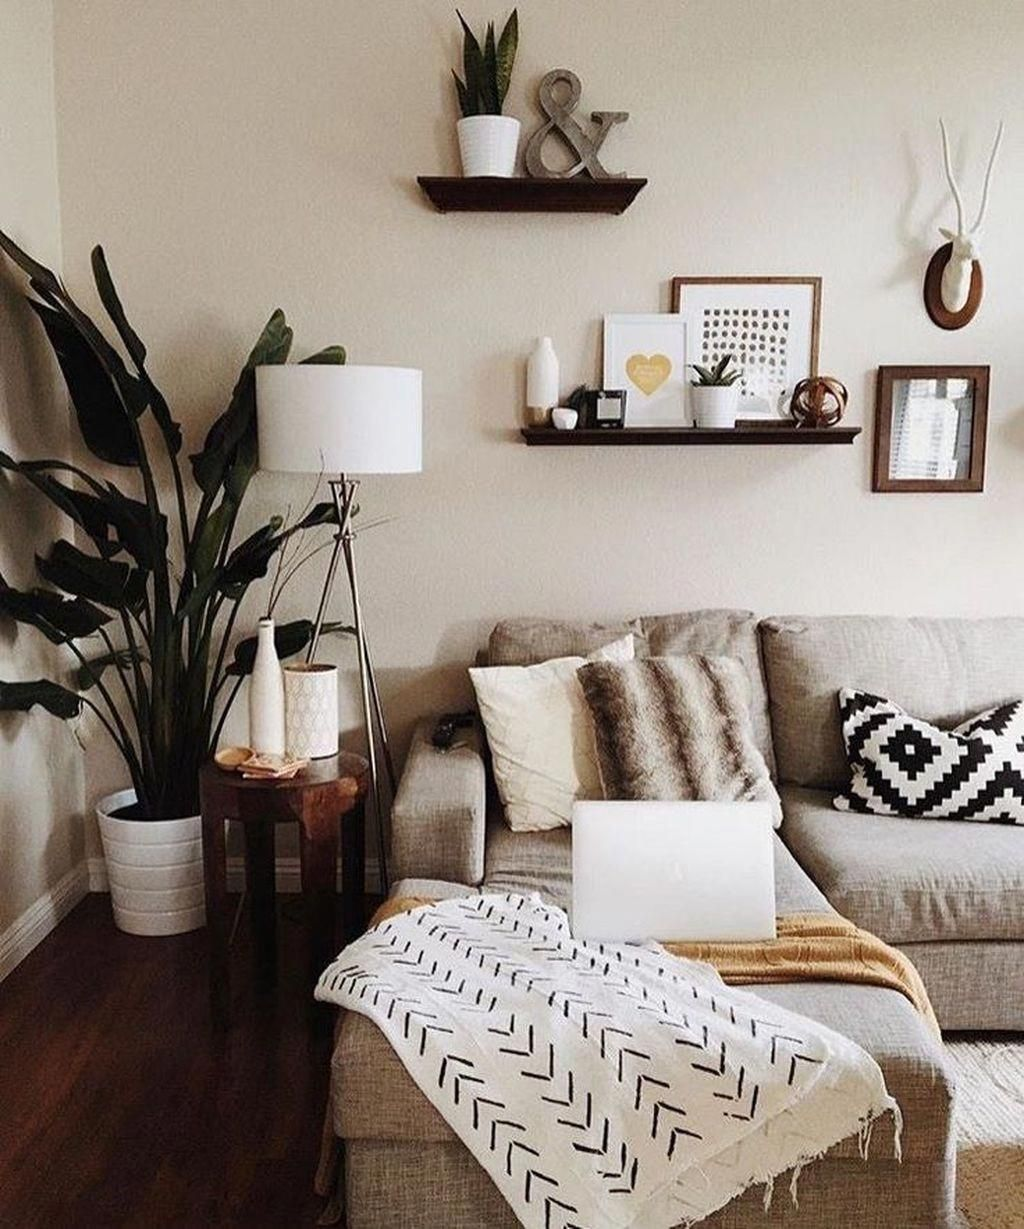 16 Enticing Wall Decorating Ideas For Your Living Room: Modern Woo On Boho Style In